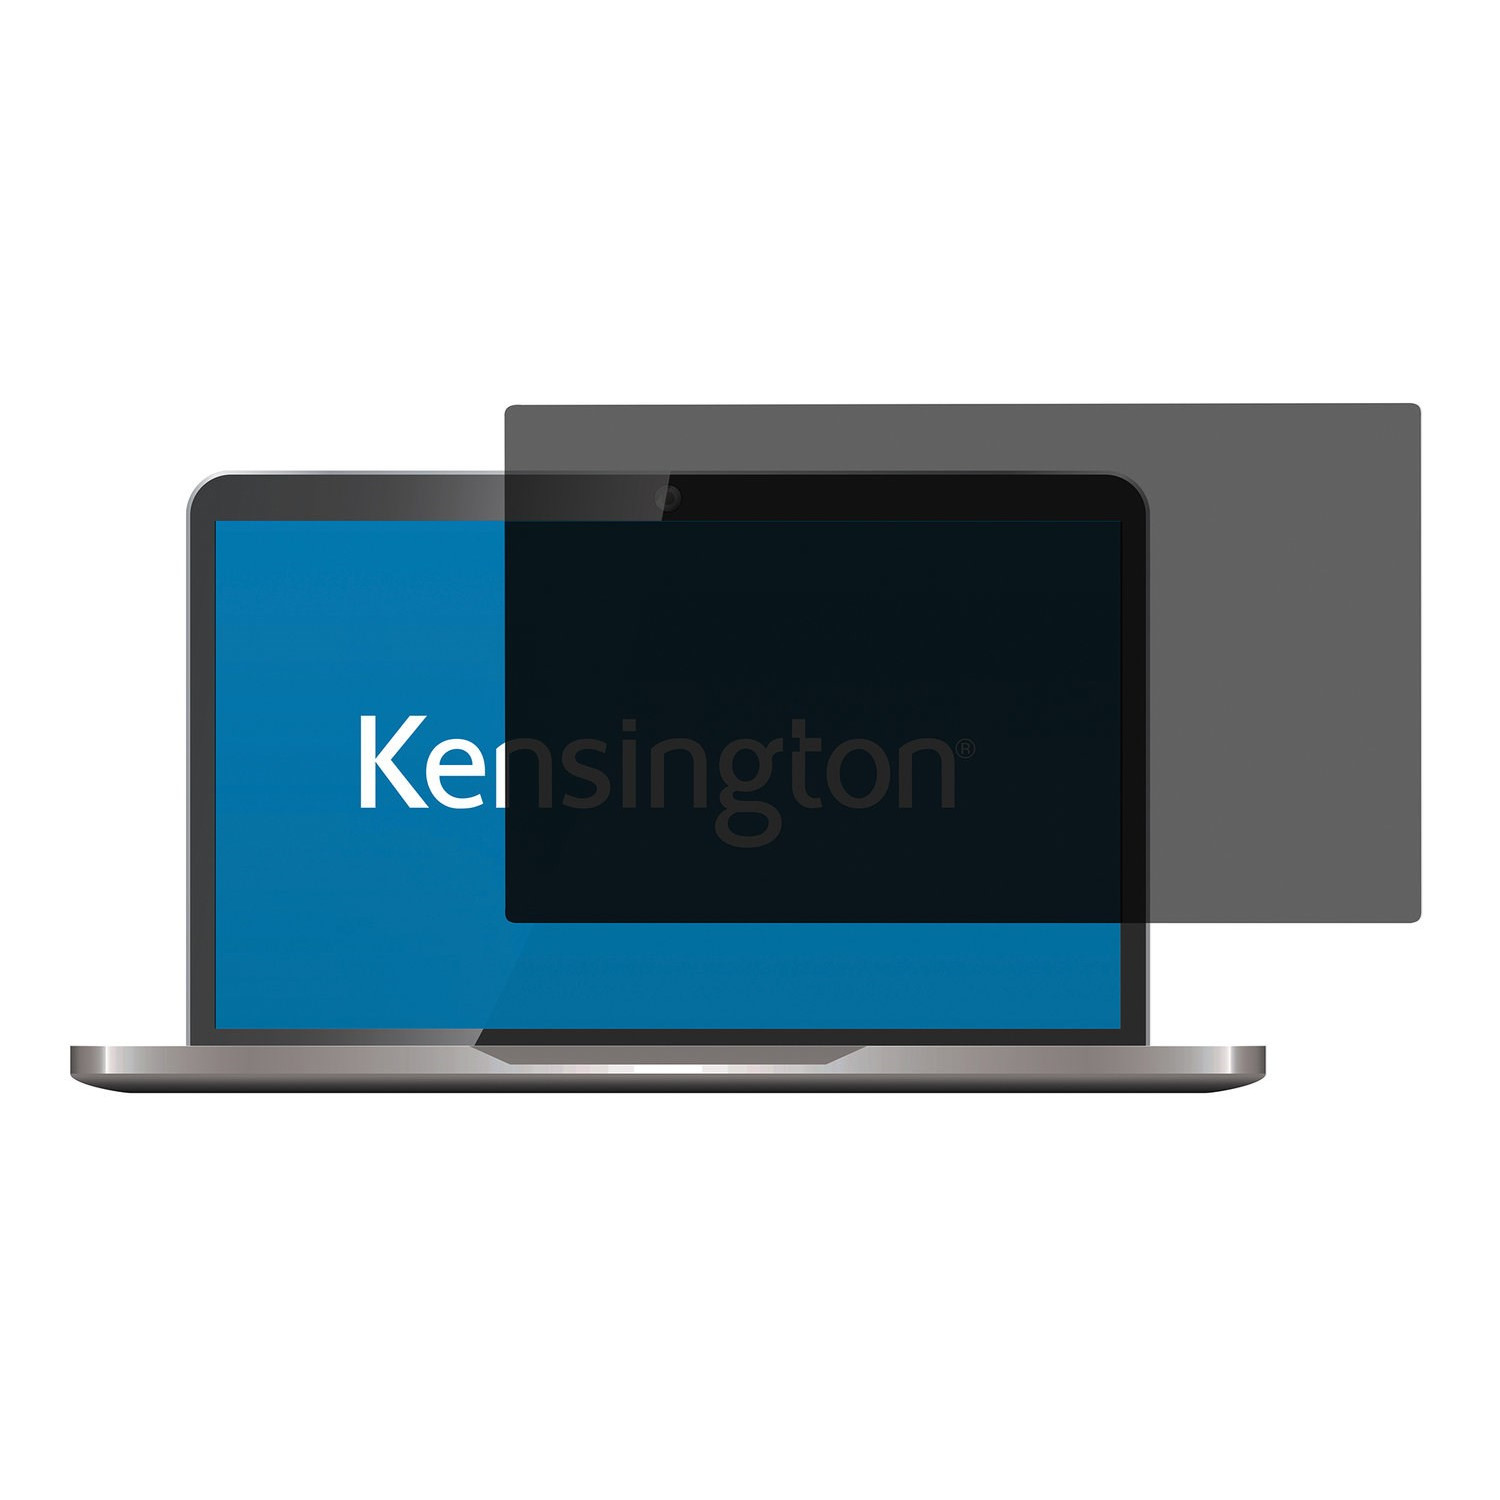 "Kensington privacy filter 2 way removable 17"" Wide 16:10"